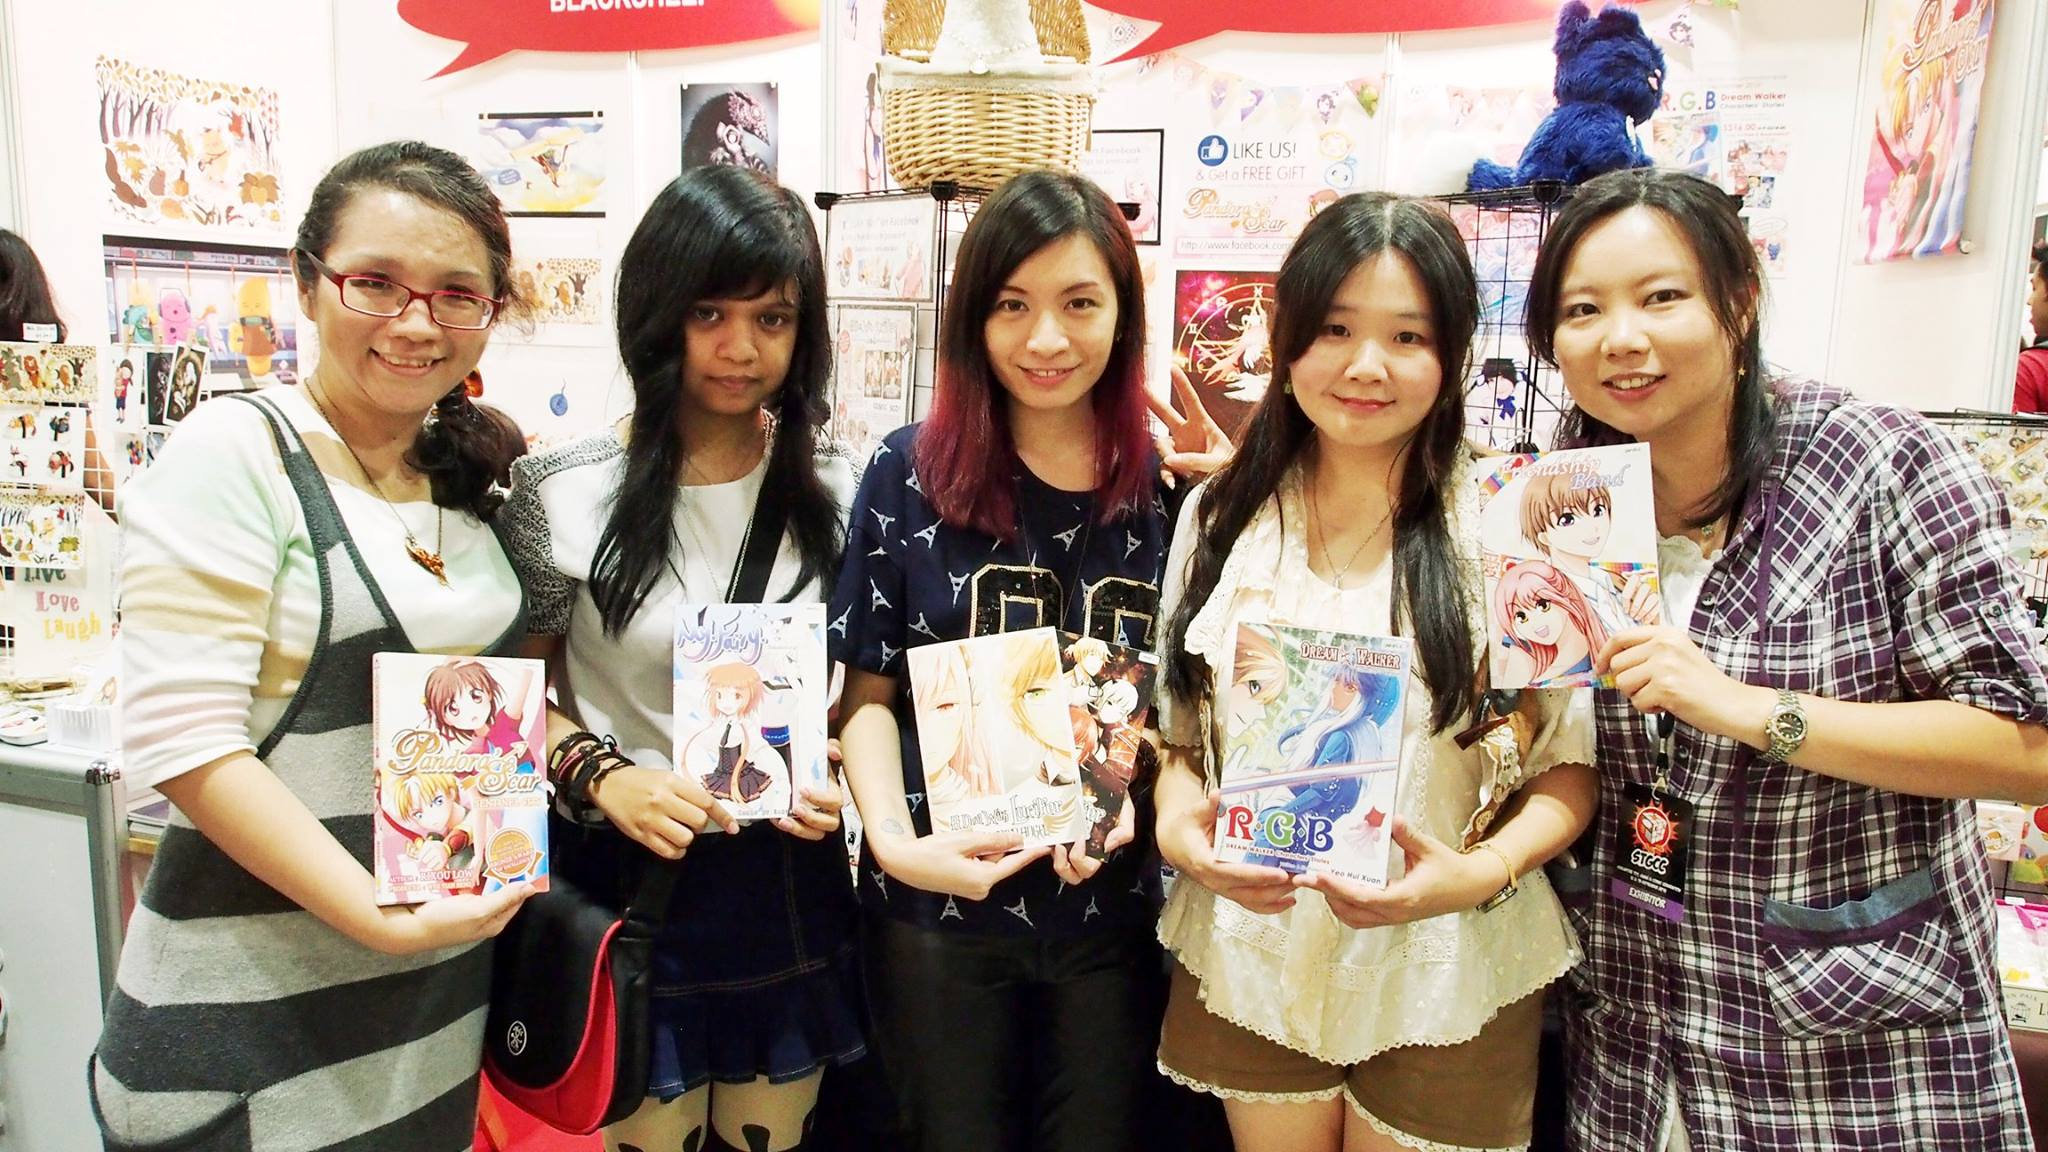 A Deal With Lucifer Author Clio Hui Kiri with Comix Pandora Artists at STGCC 2015